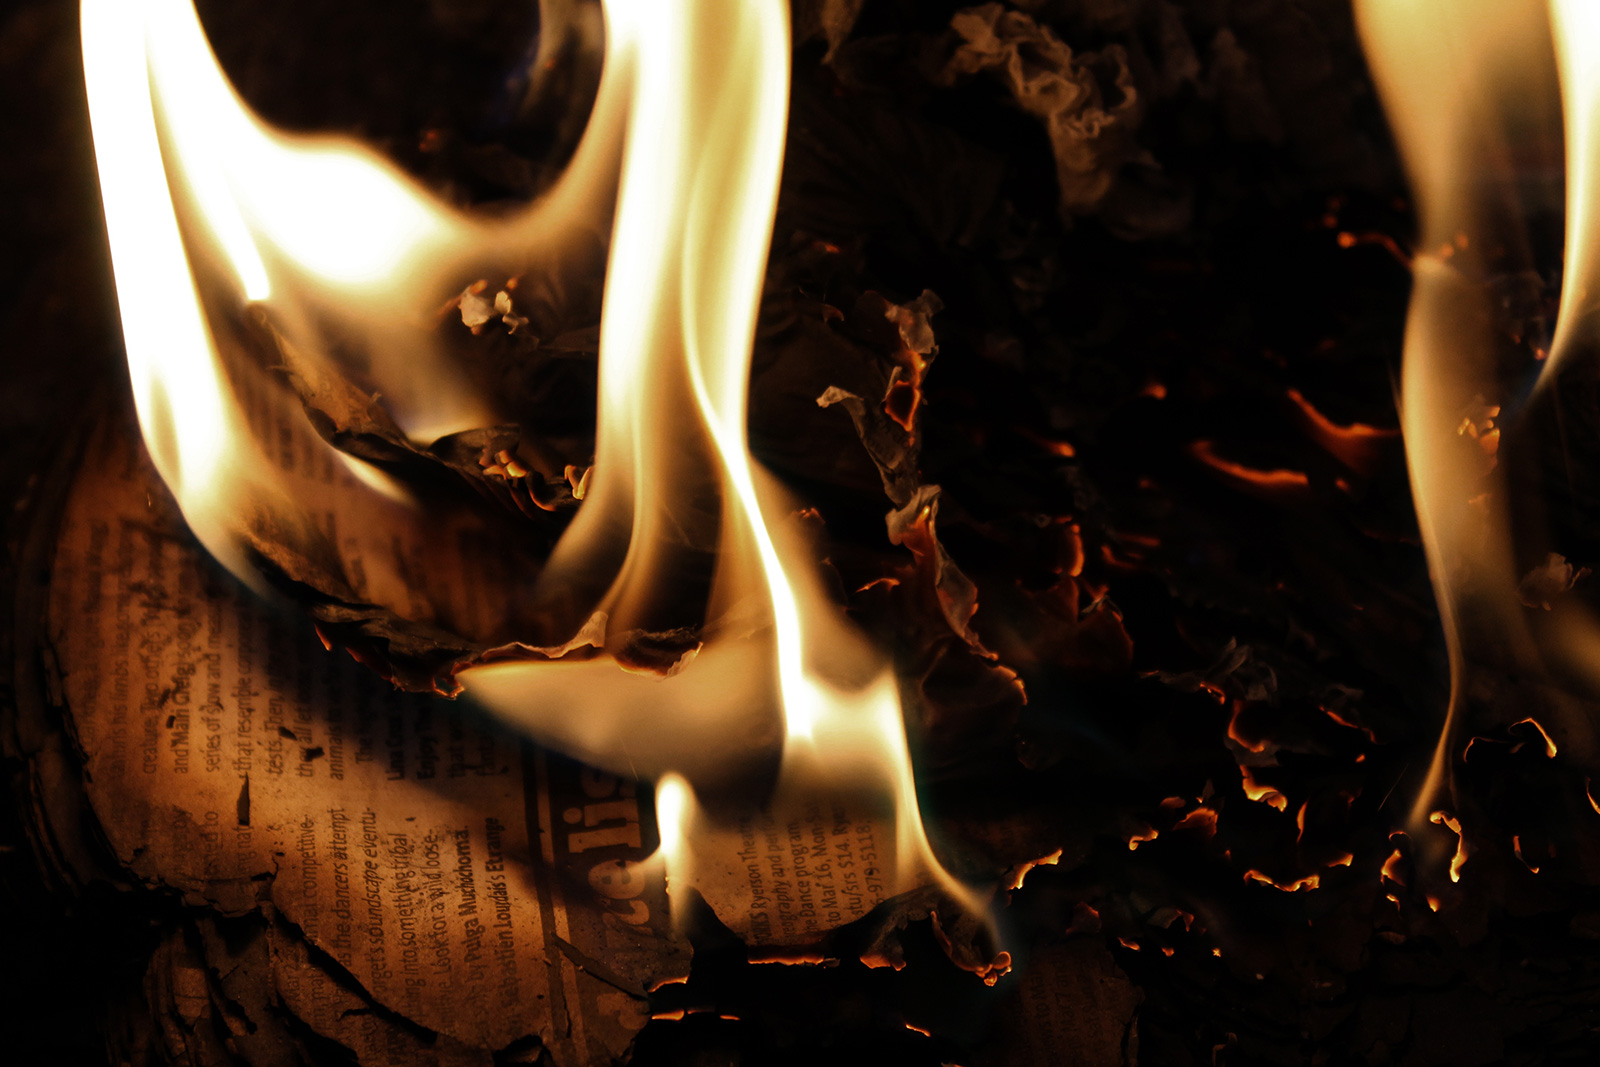 Newspapers burning